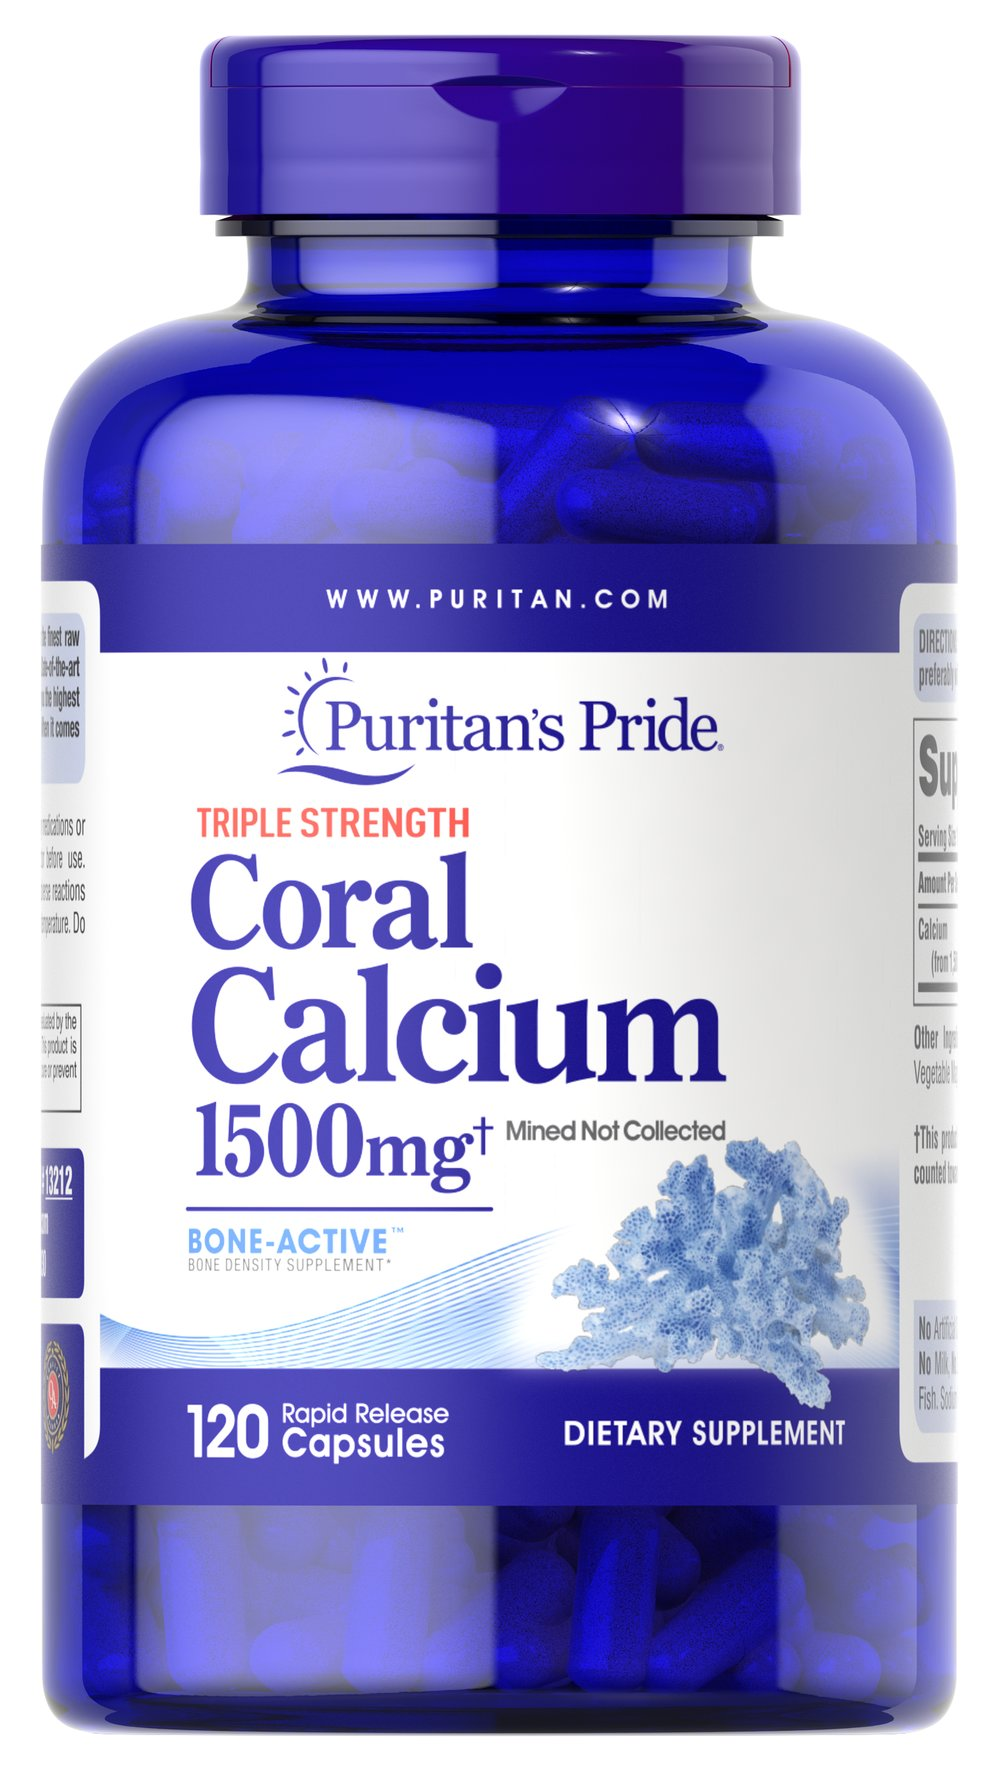 Triple Strength Coral Calcium 1500 mg <p>Our Triple Strength Coral Calcium delivers three times the amount of Calcium (562 mg per capsule — 1500 mg daily when taken as directed). Calcium promotes bone strength and supports heart, nerve and muscle functions.** This Coral Calcium is mined, not collected, from an above ground source  making it environmentally friendly.</p> 120 Capsules 1500 mg $40.49